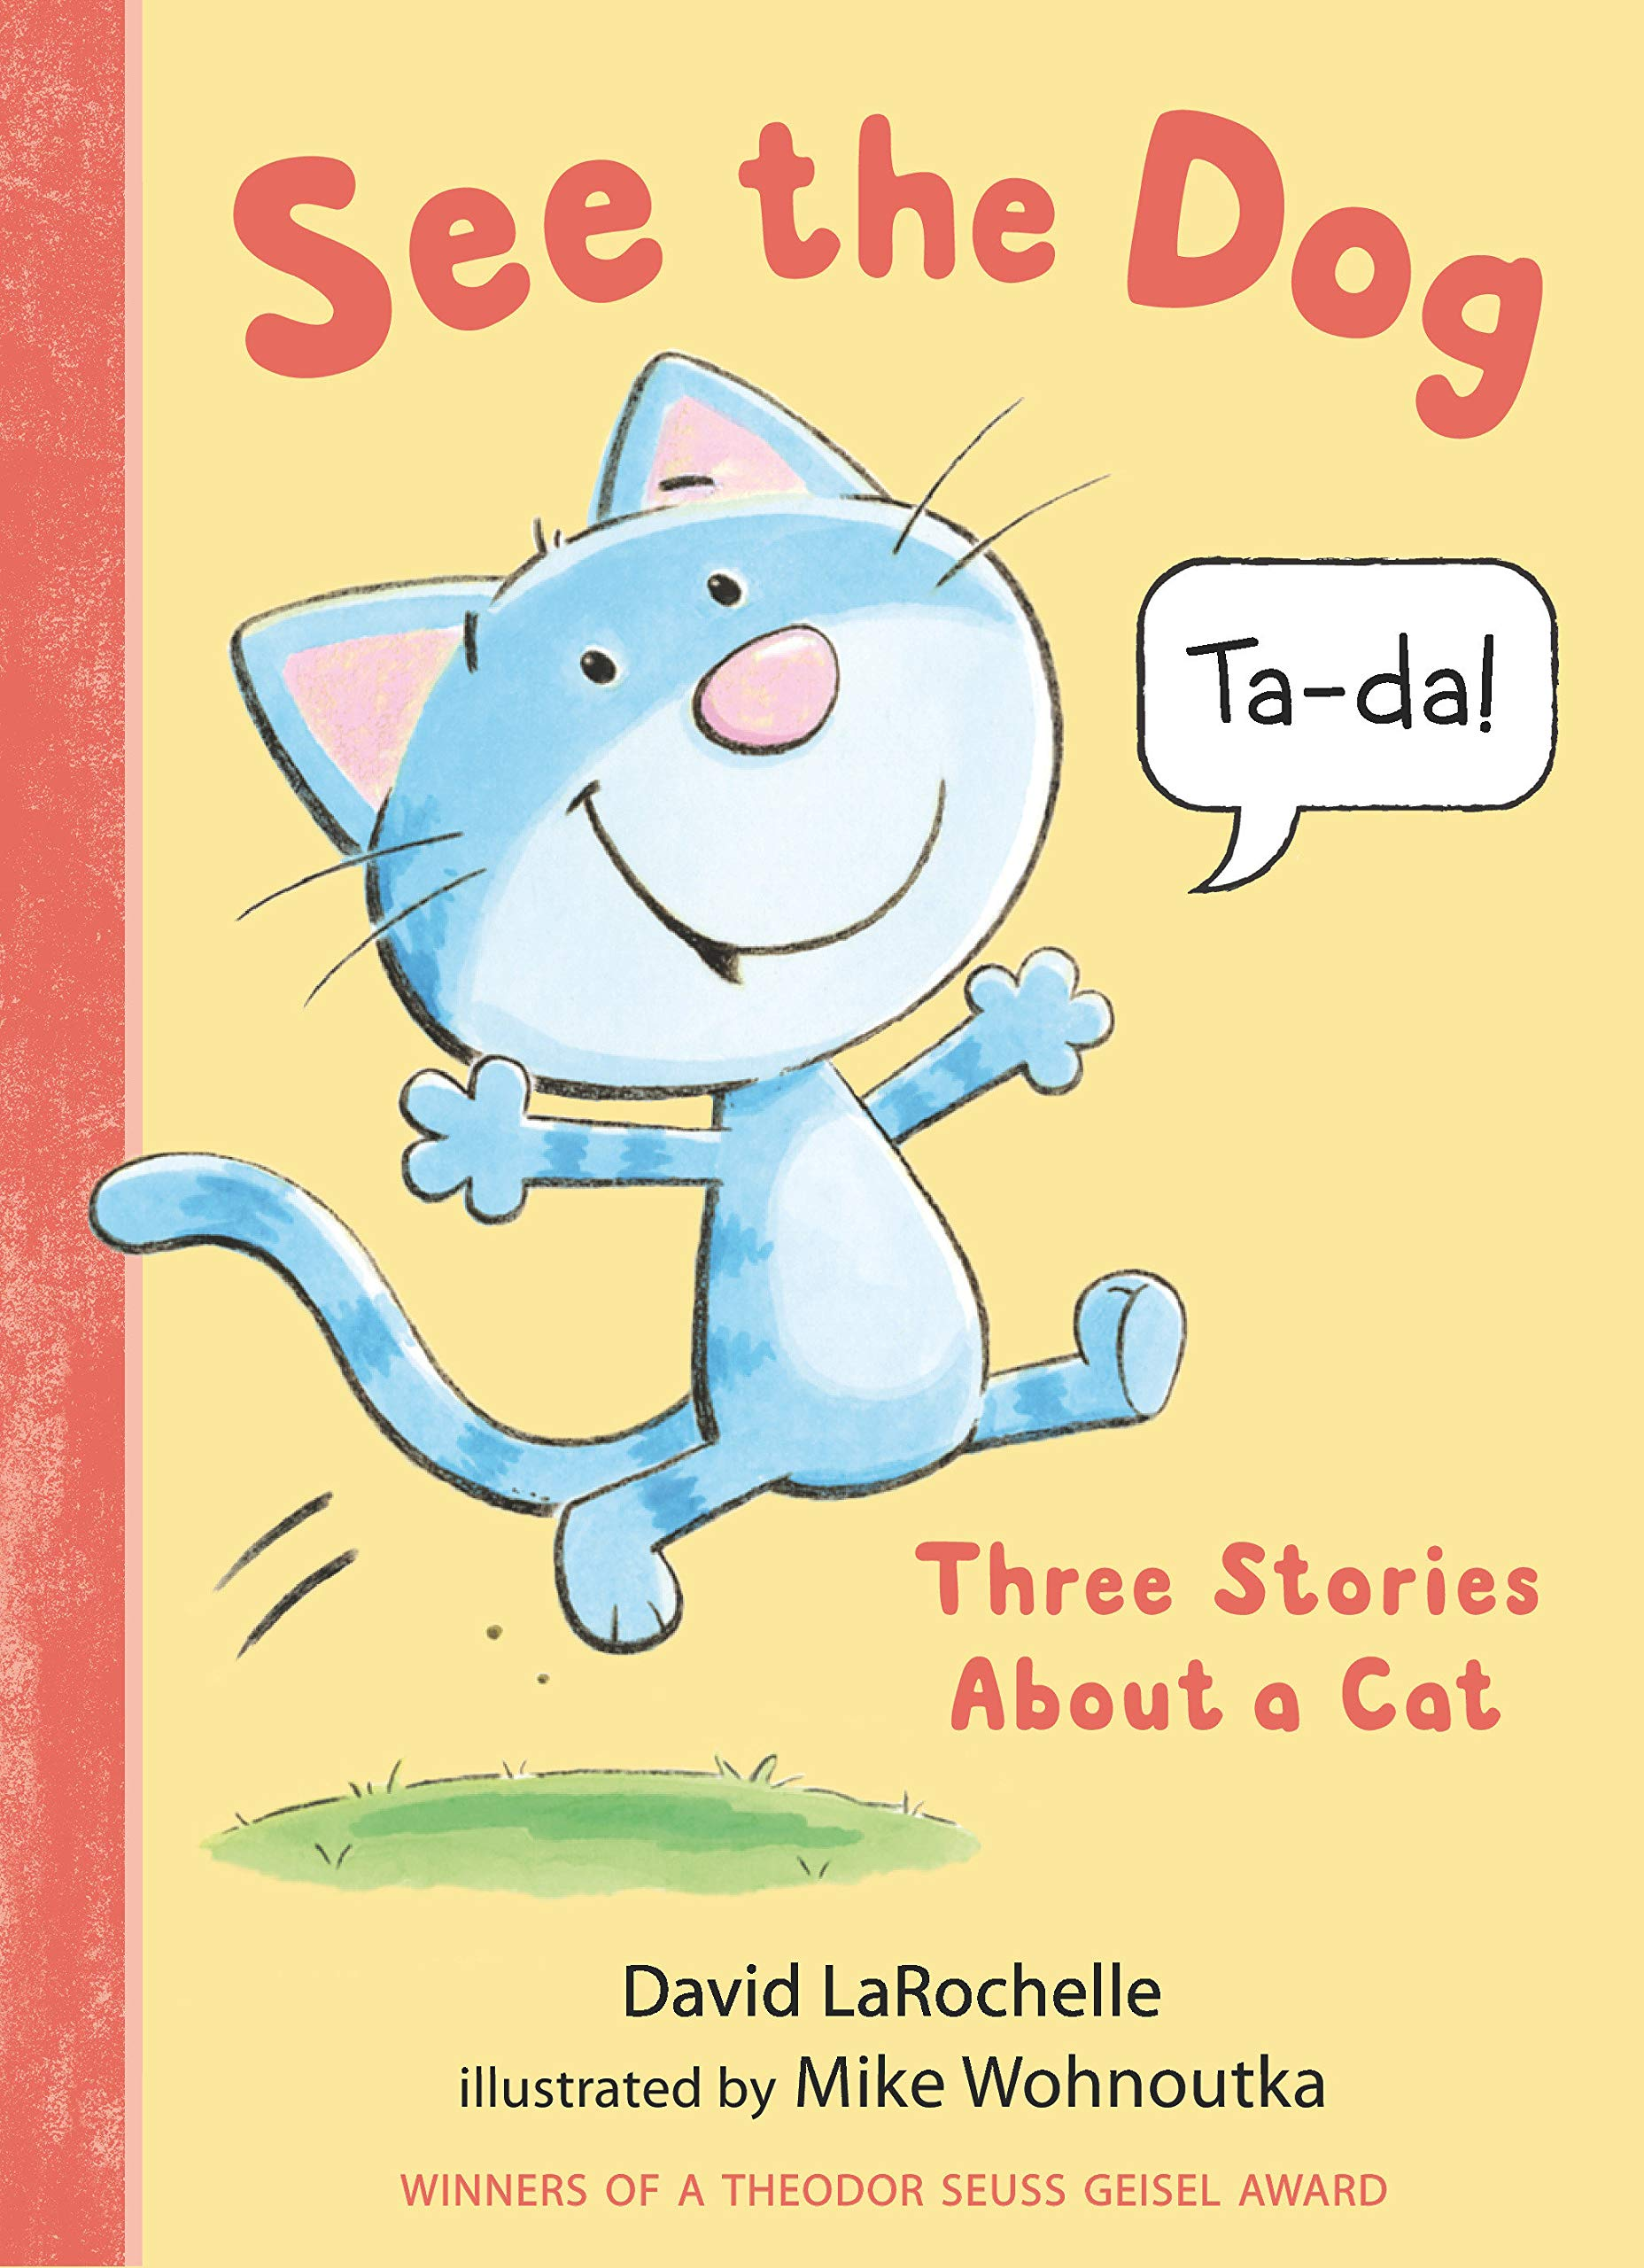 Amazon.com: See the Dog: Three Stories About a Cat: 9781536216295:  LaRochelle, David, Wohnoutka, Mike: Books